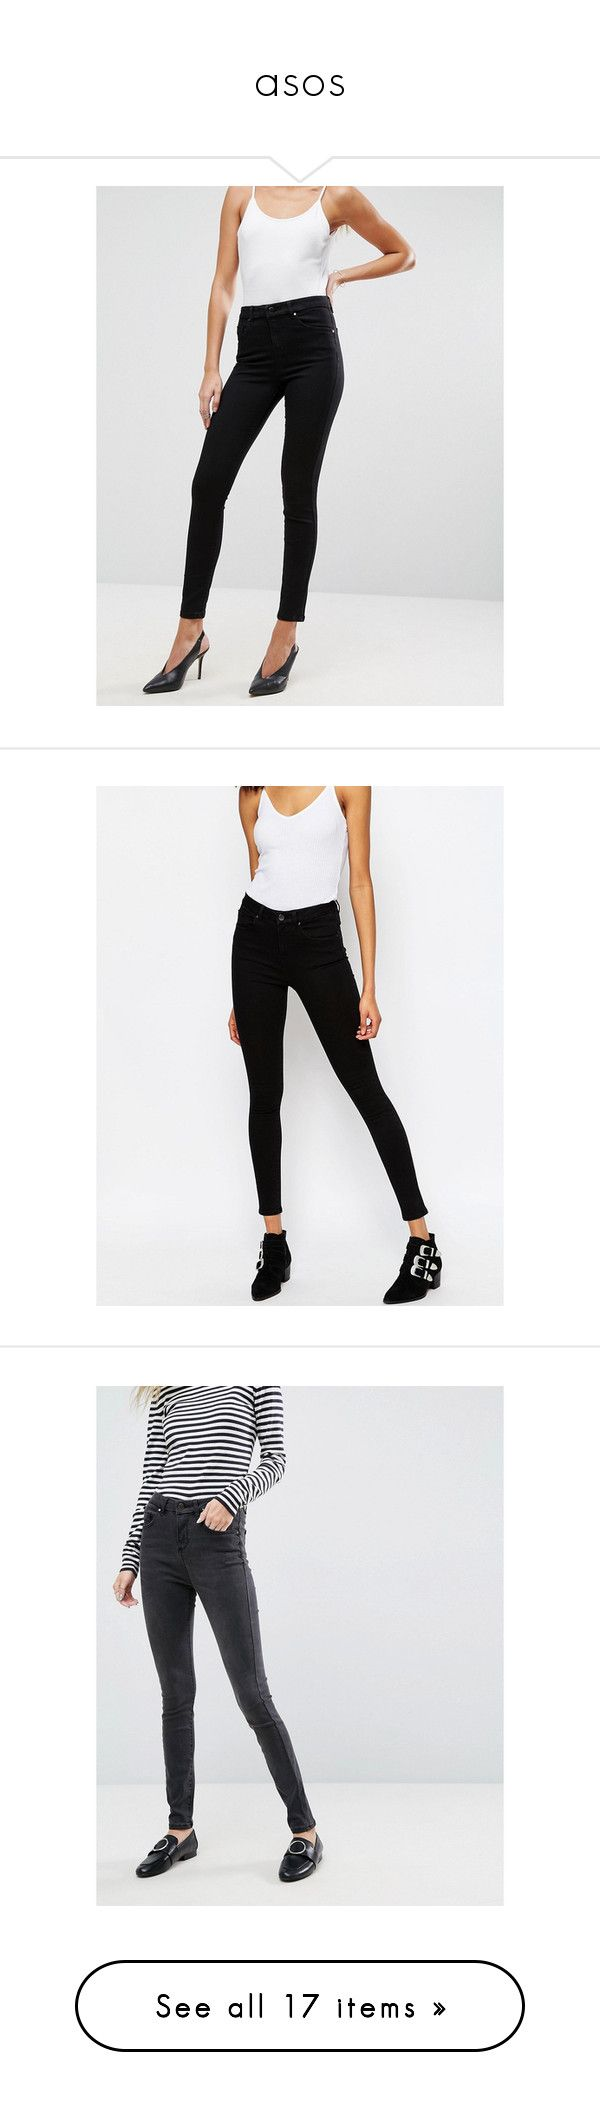 """""""asos"""" by o2amclub ❤ liked on Polyvore featuring jeans, stretchy jeans, skinny jeans, high rise jeans, super high rise skinny jeans, tall skinny jeans, blue, high rise skinny jeans, stretch skinny jeans and tall jeans"""